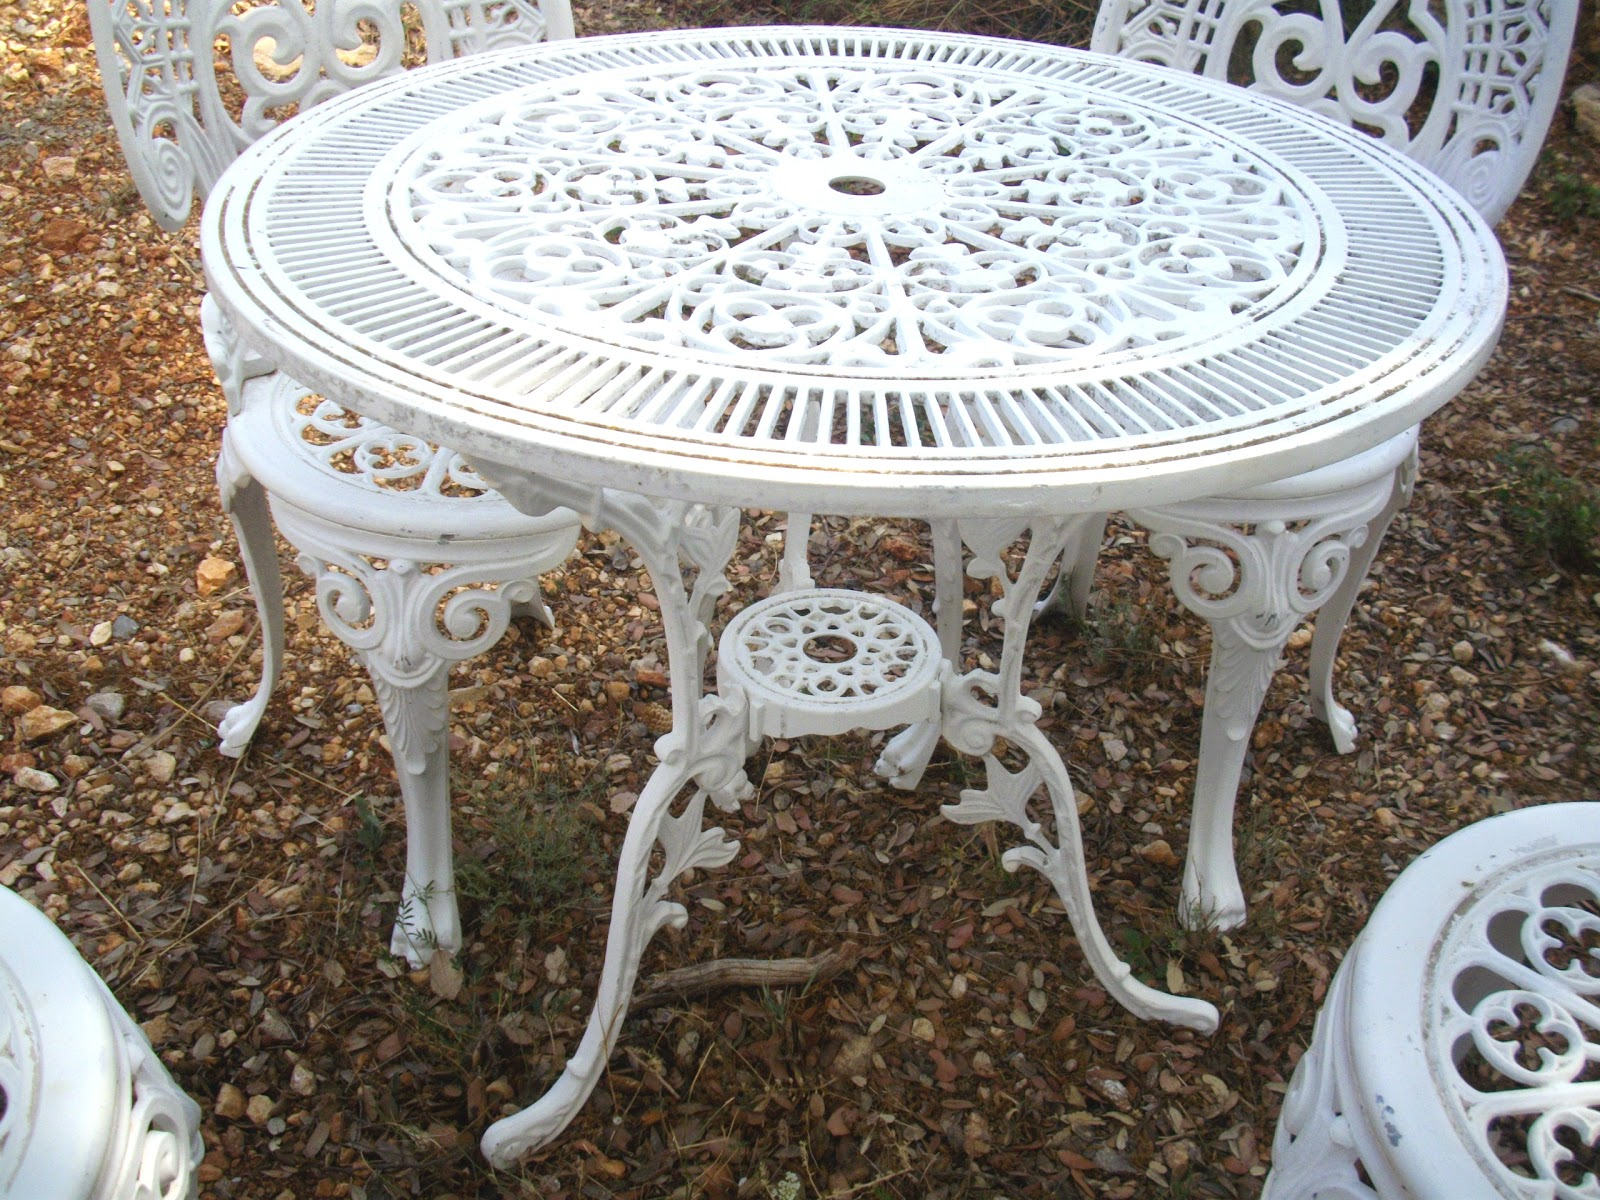 Salon de jardin rocaille blanc immitation fonte no fer for Blanche porte salon de jardin